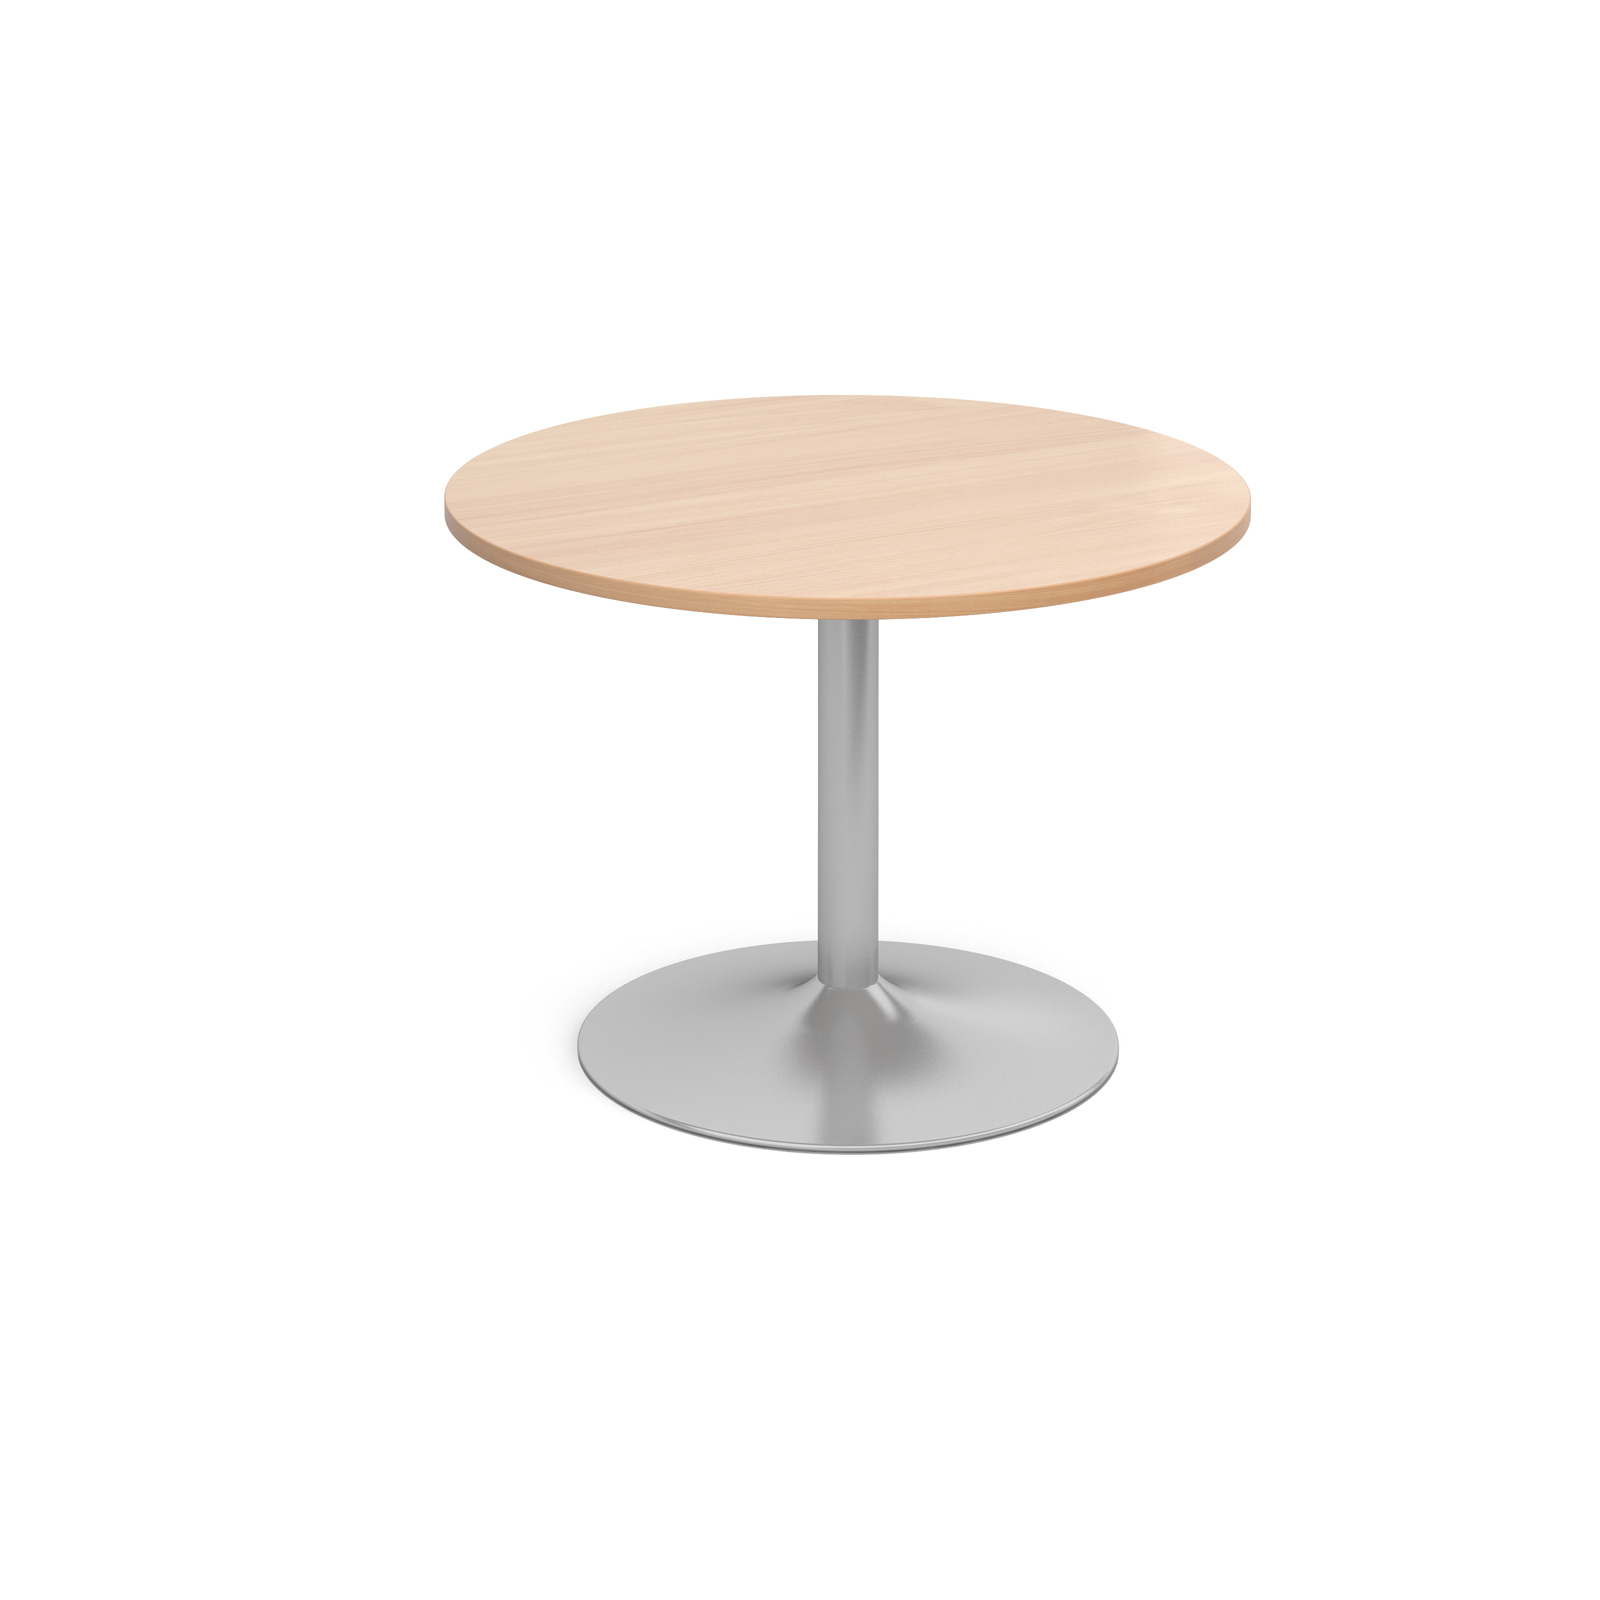 1000 Dia Circular Trumpet Base Boardroom Table 25mm Top -  Beech